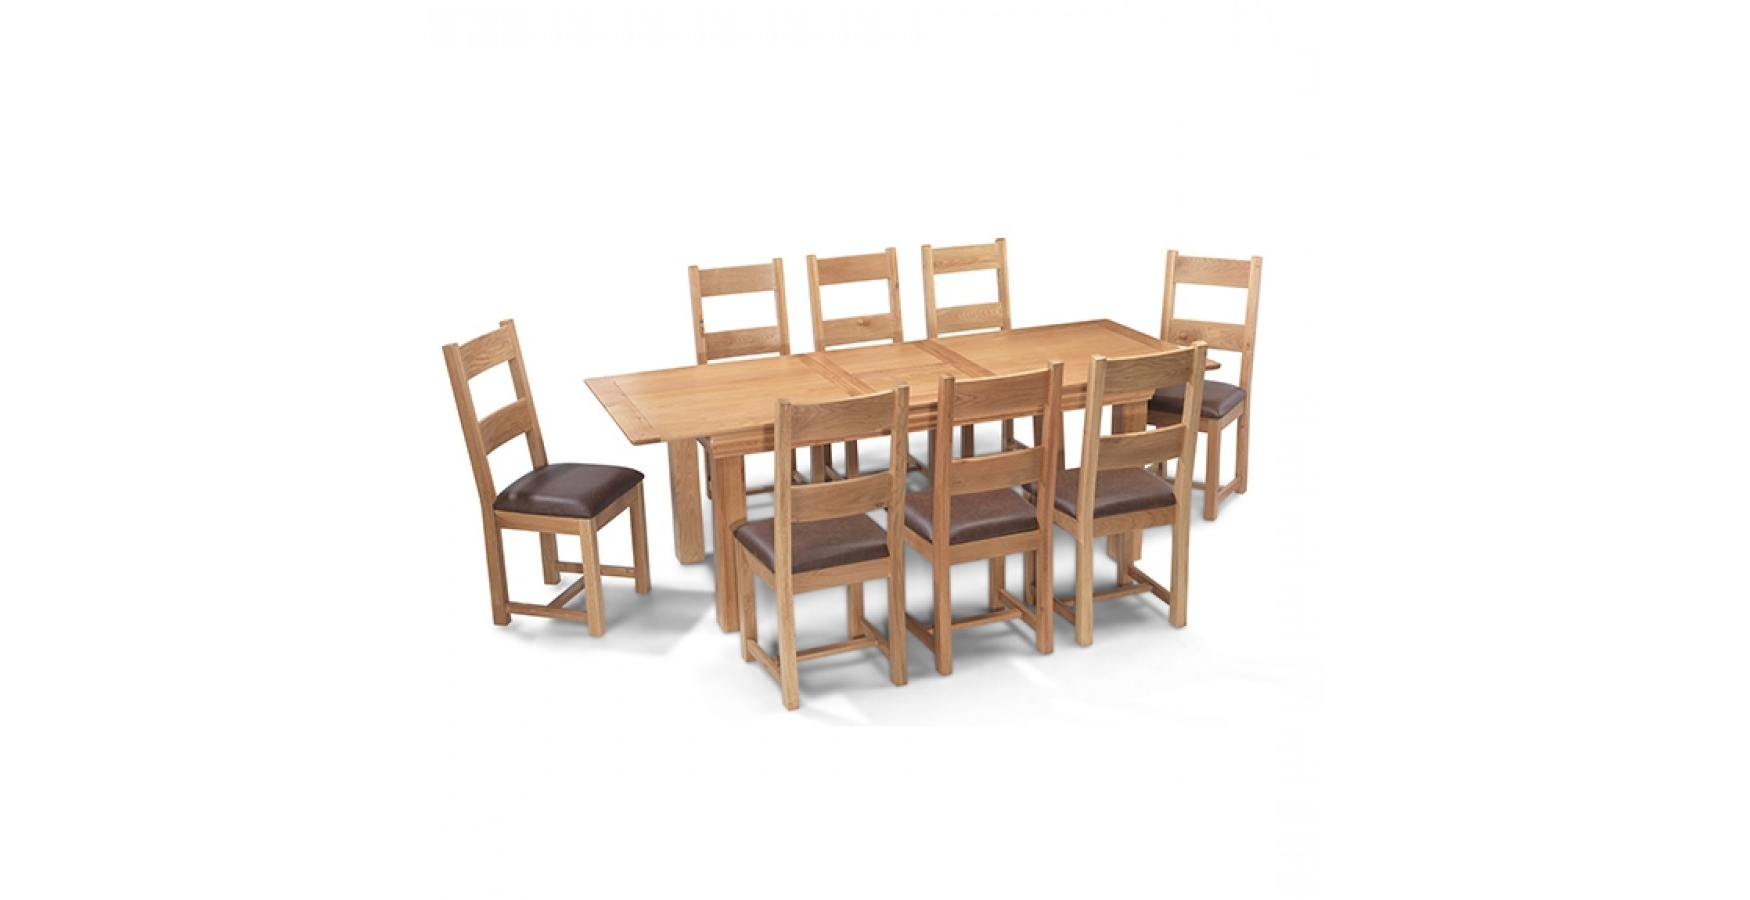 2017 Breton Oak 180 230 Cm Extending Dining Table And 8 Chairs With Regard To Extending Dining Tables And 8 Chairs (View 8 of 25)